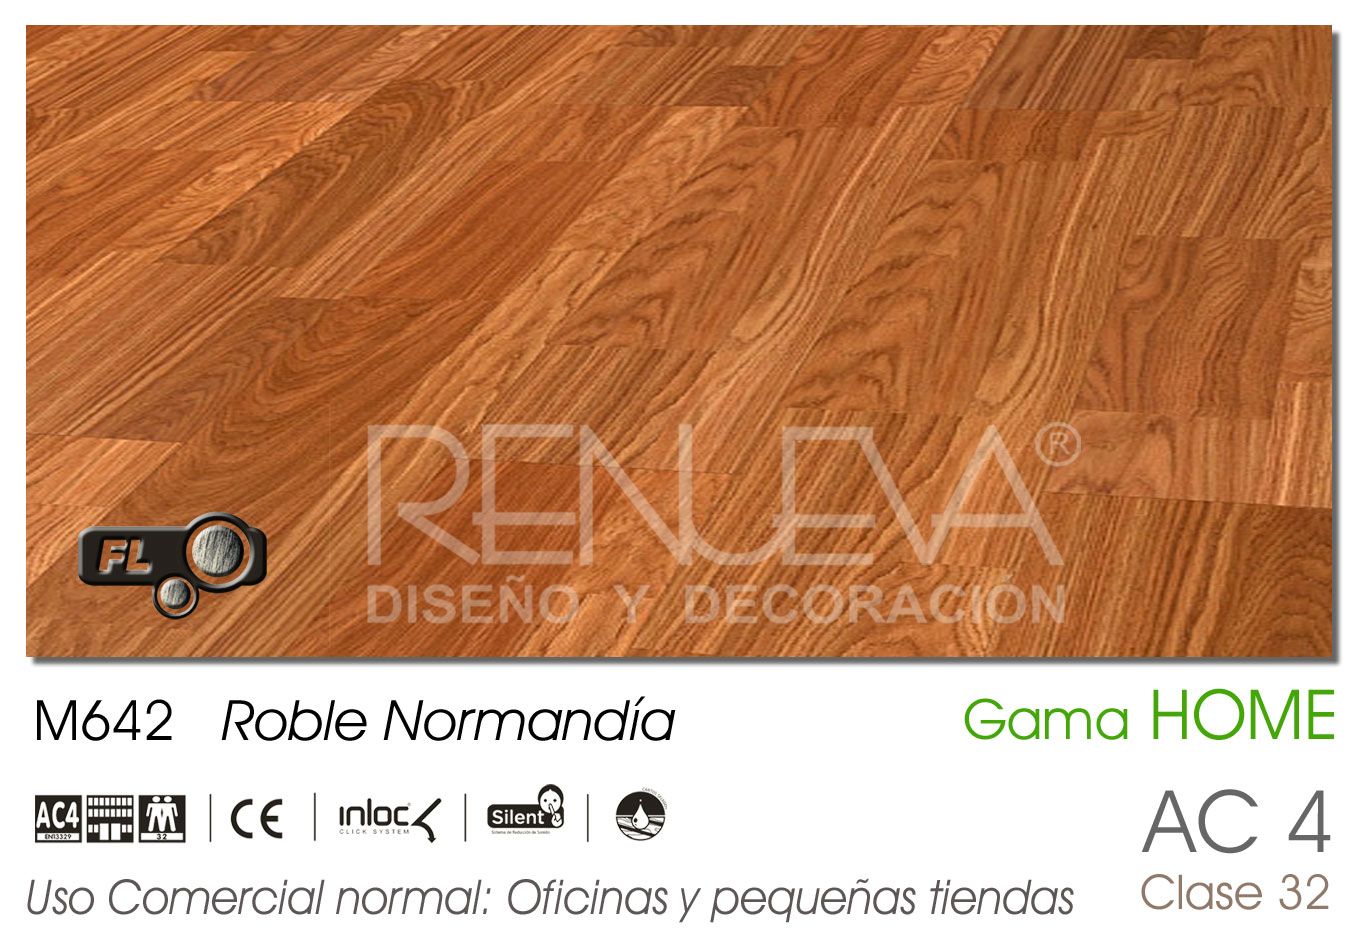 M642 ROBLE